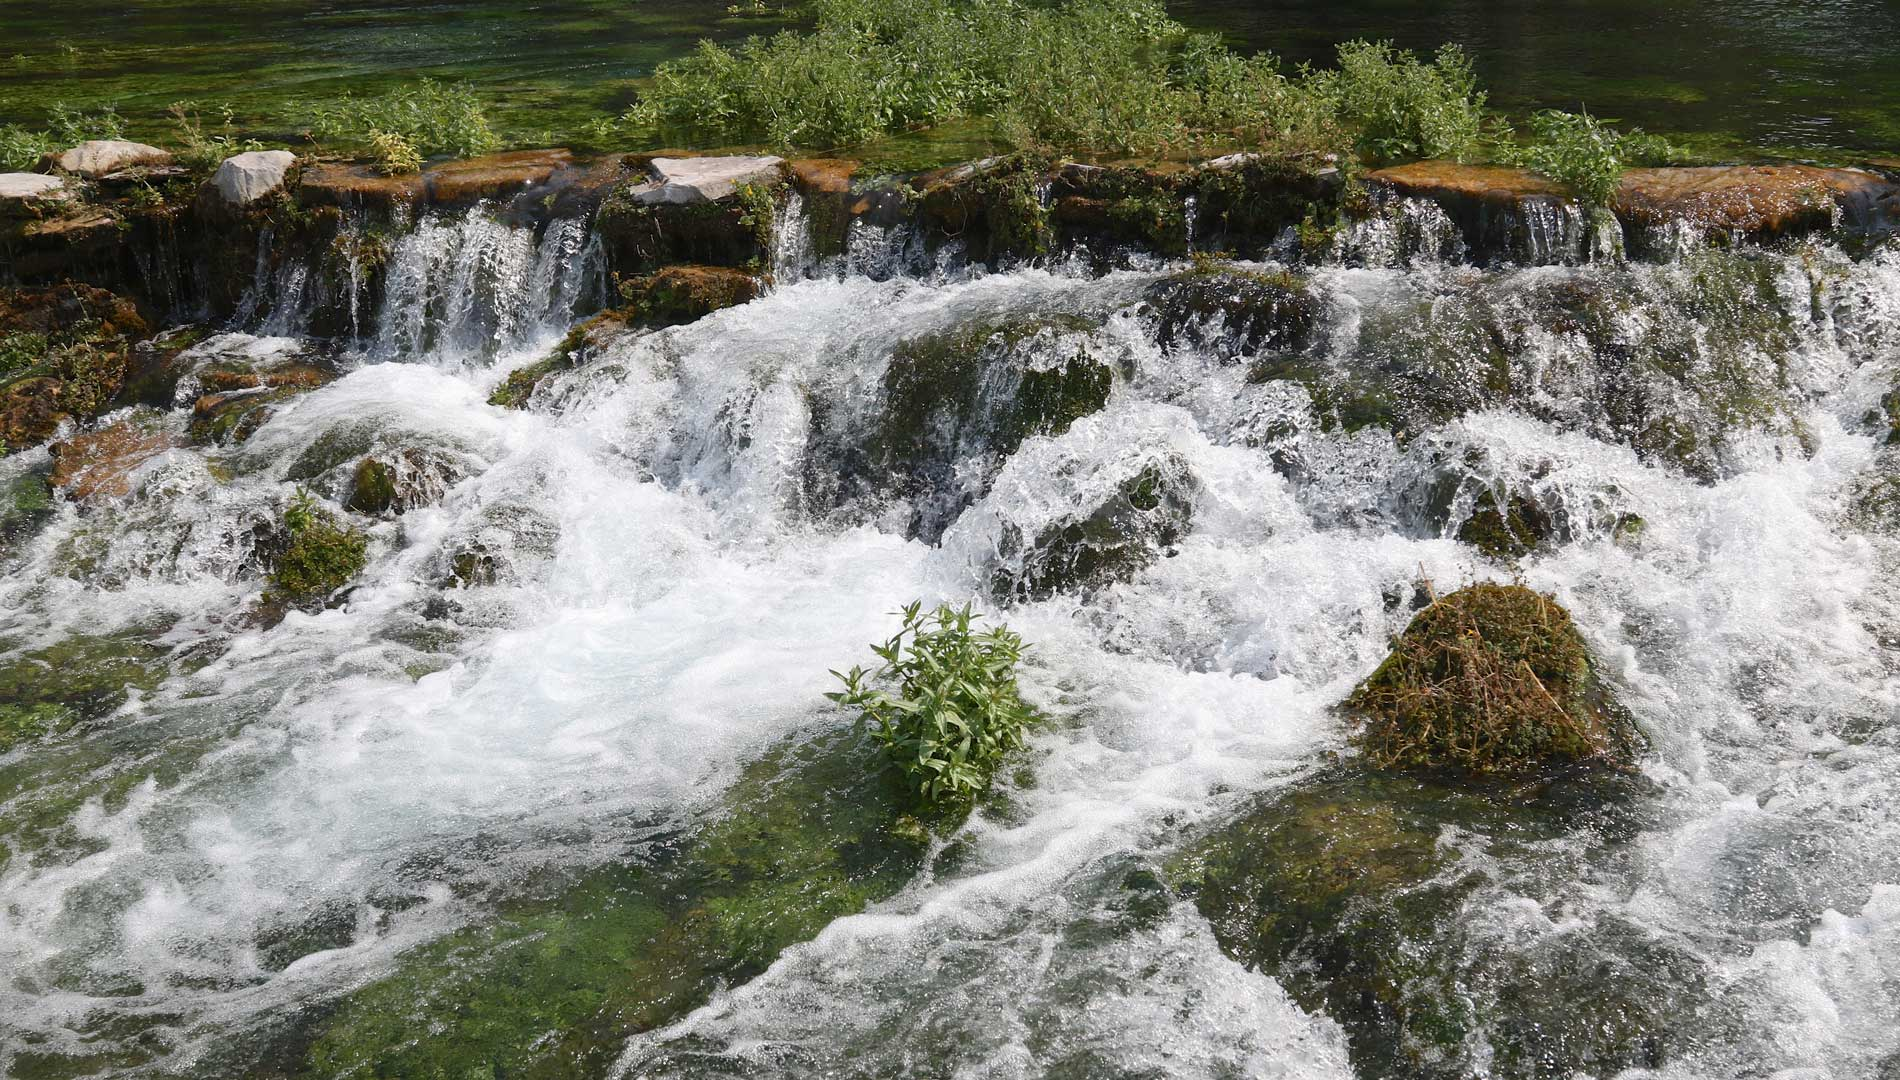 giant springs in great falls montana